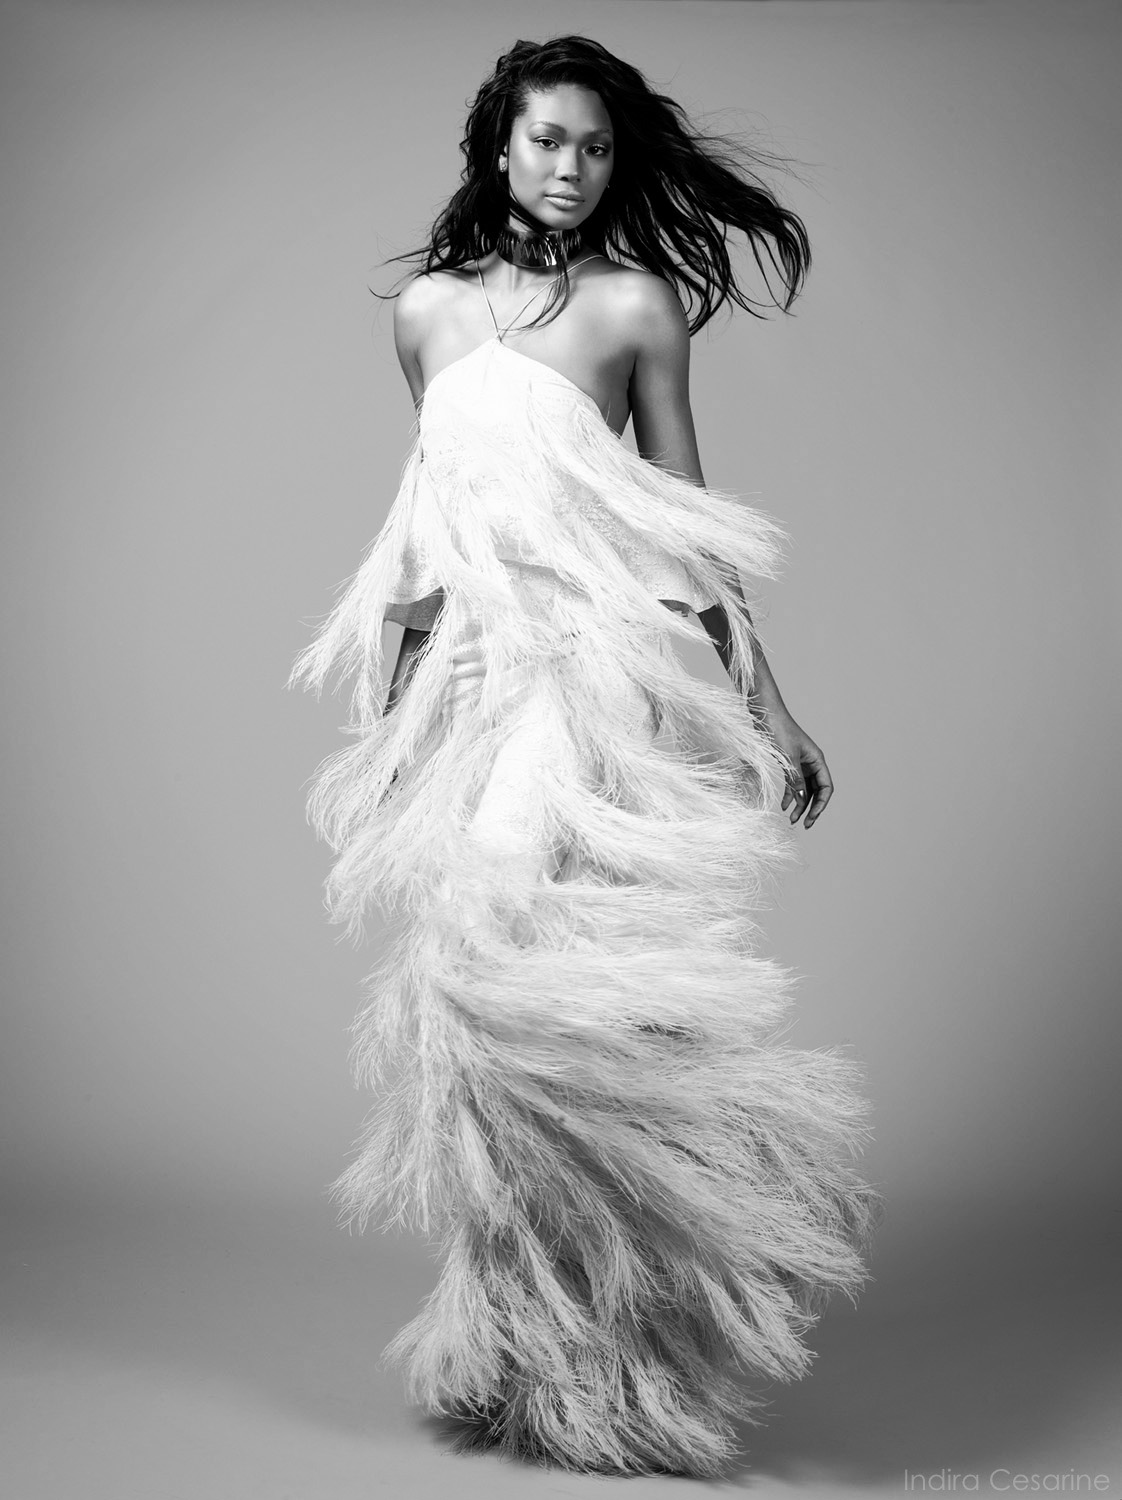 Chanel-Iman-Photography-by-Indira-Cesarine-001-bw.jpg